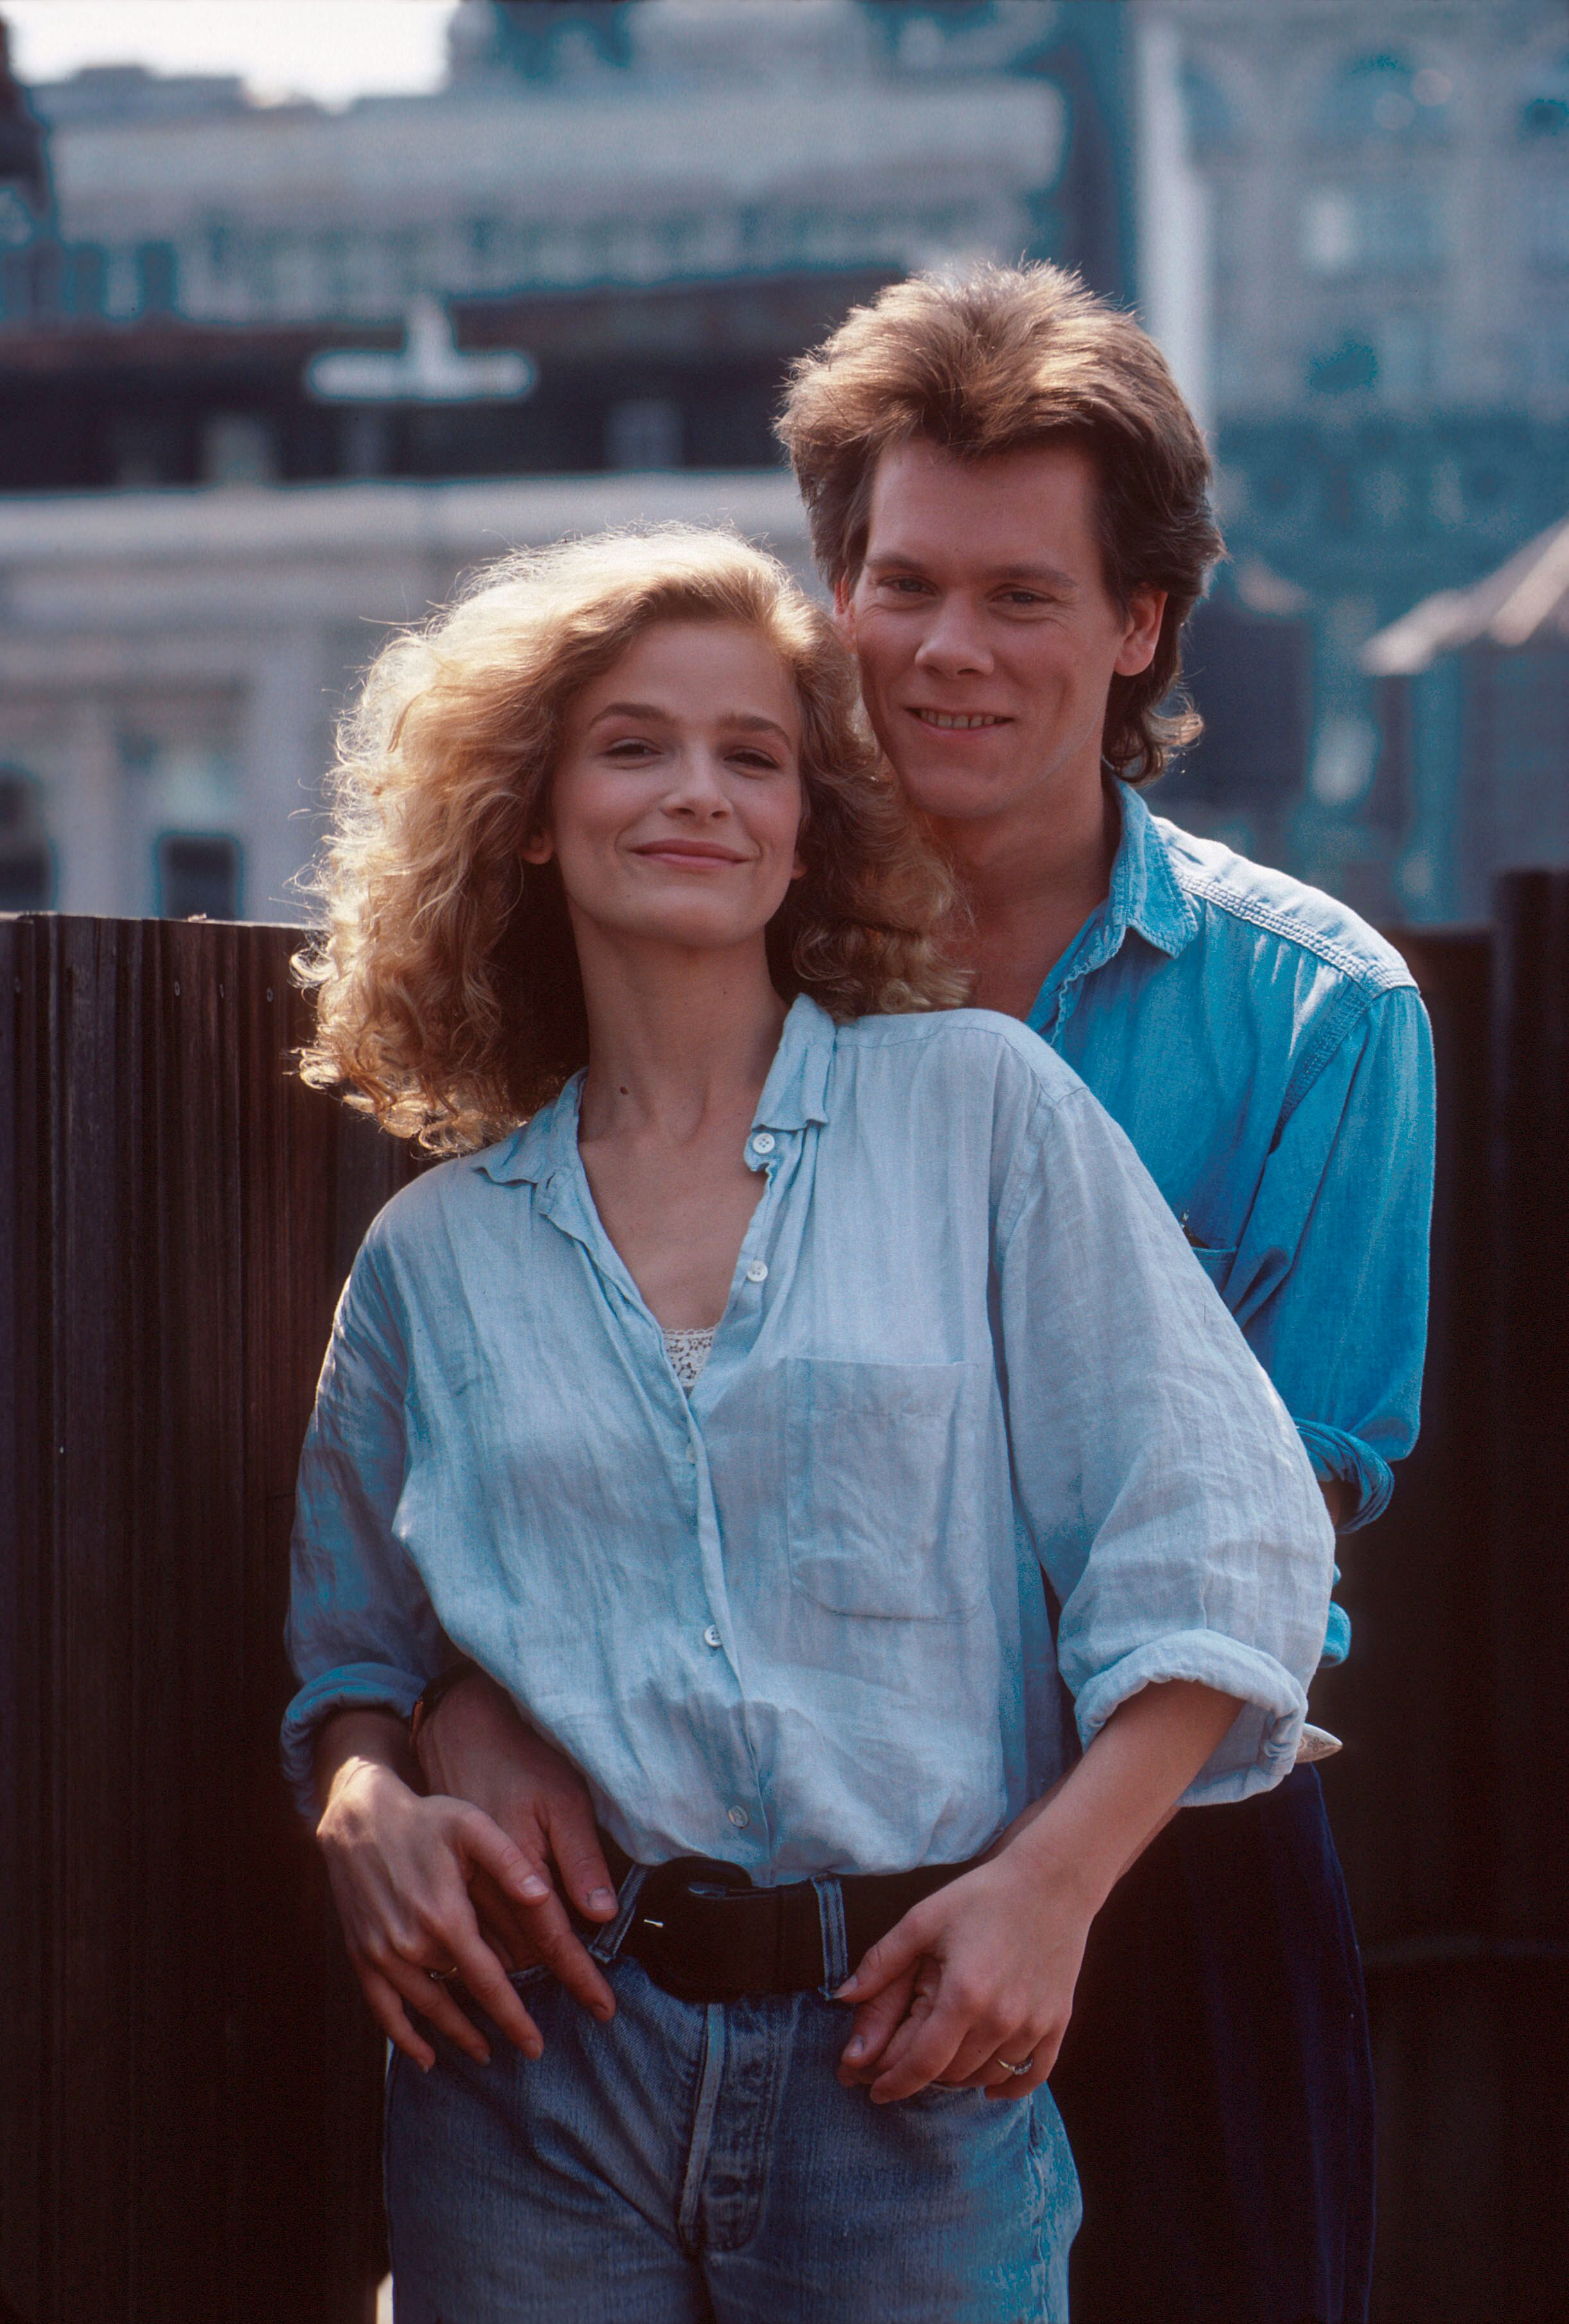 Kevin Bacon with Kyra Sedgwick on photo shoot in New York in 1988 | Getty Images / Global Images Ukraine